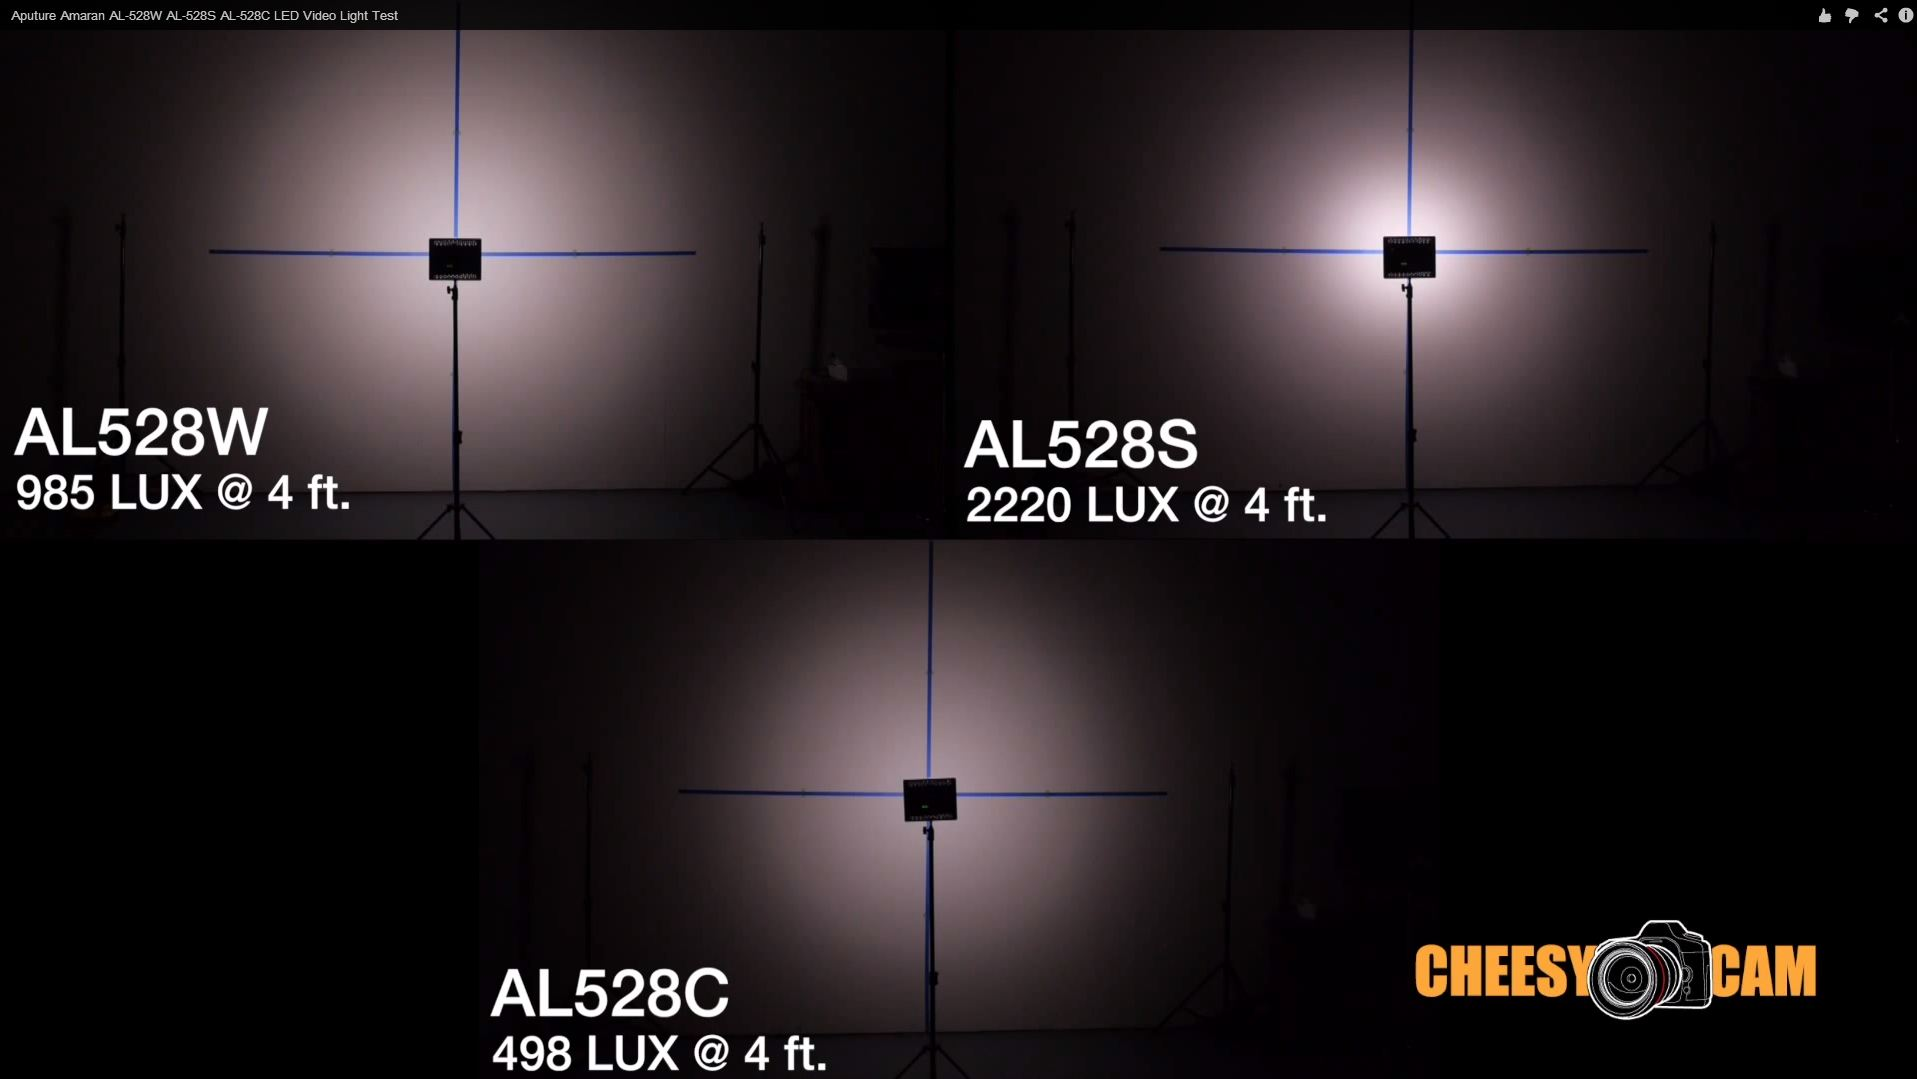 Aputure Amaran AL-528W AL-528S AL-528C LED Video Light Test_Cheesycam